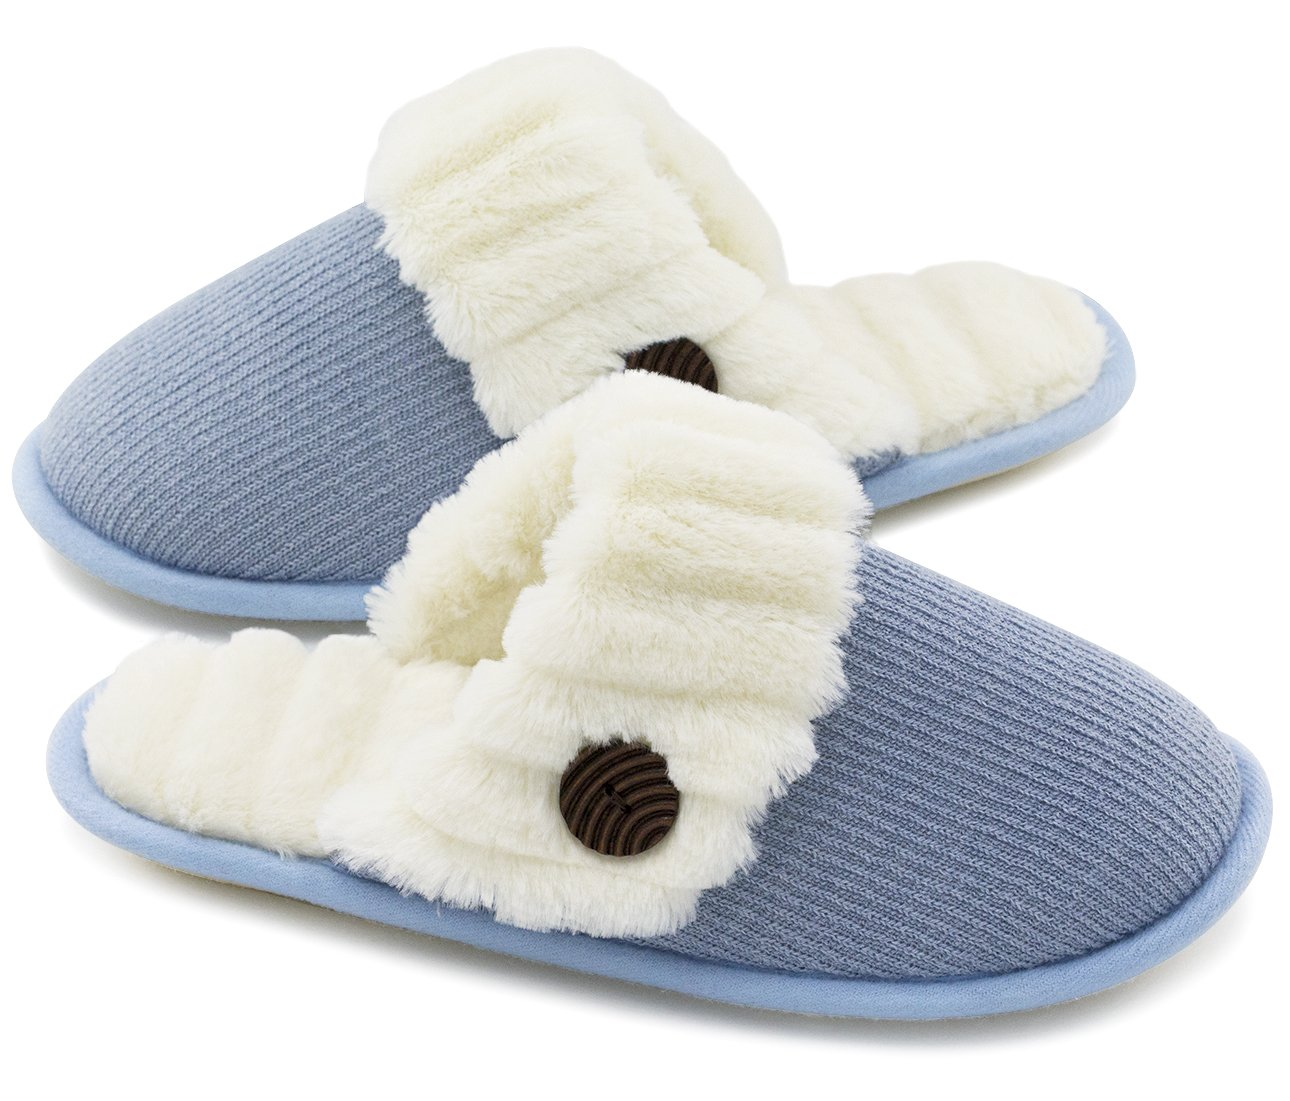 HomeTop Women's Cute Fuzzy Knitted Memory Foam Indoor House Slippers for Families Couples (39-40 (US Women's 9-10; Men's 7-8), Blue)